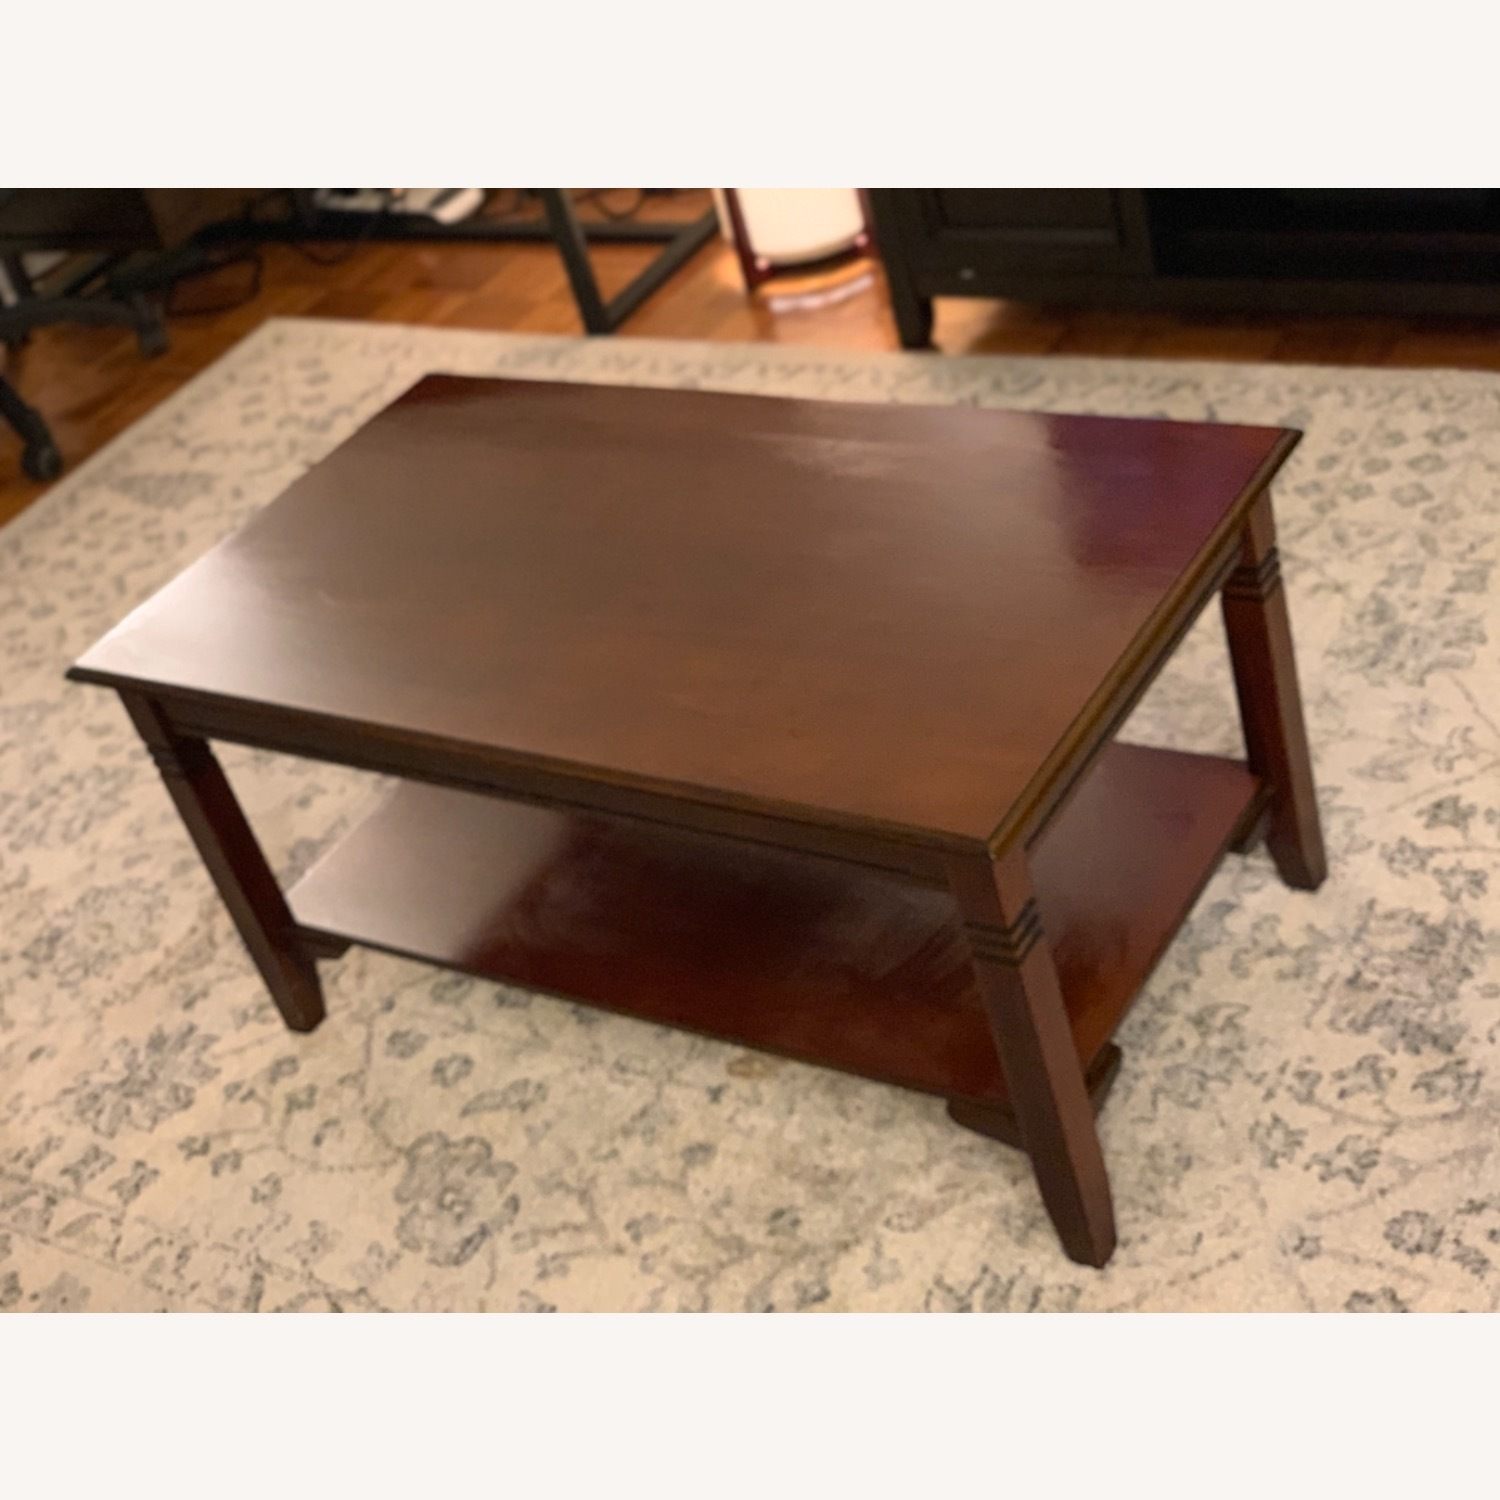 Wayfair Espresso Coffee Table - image-3